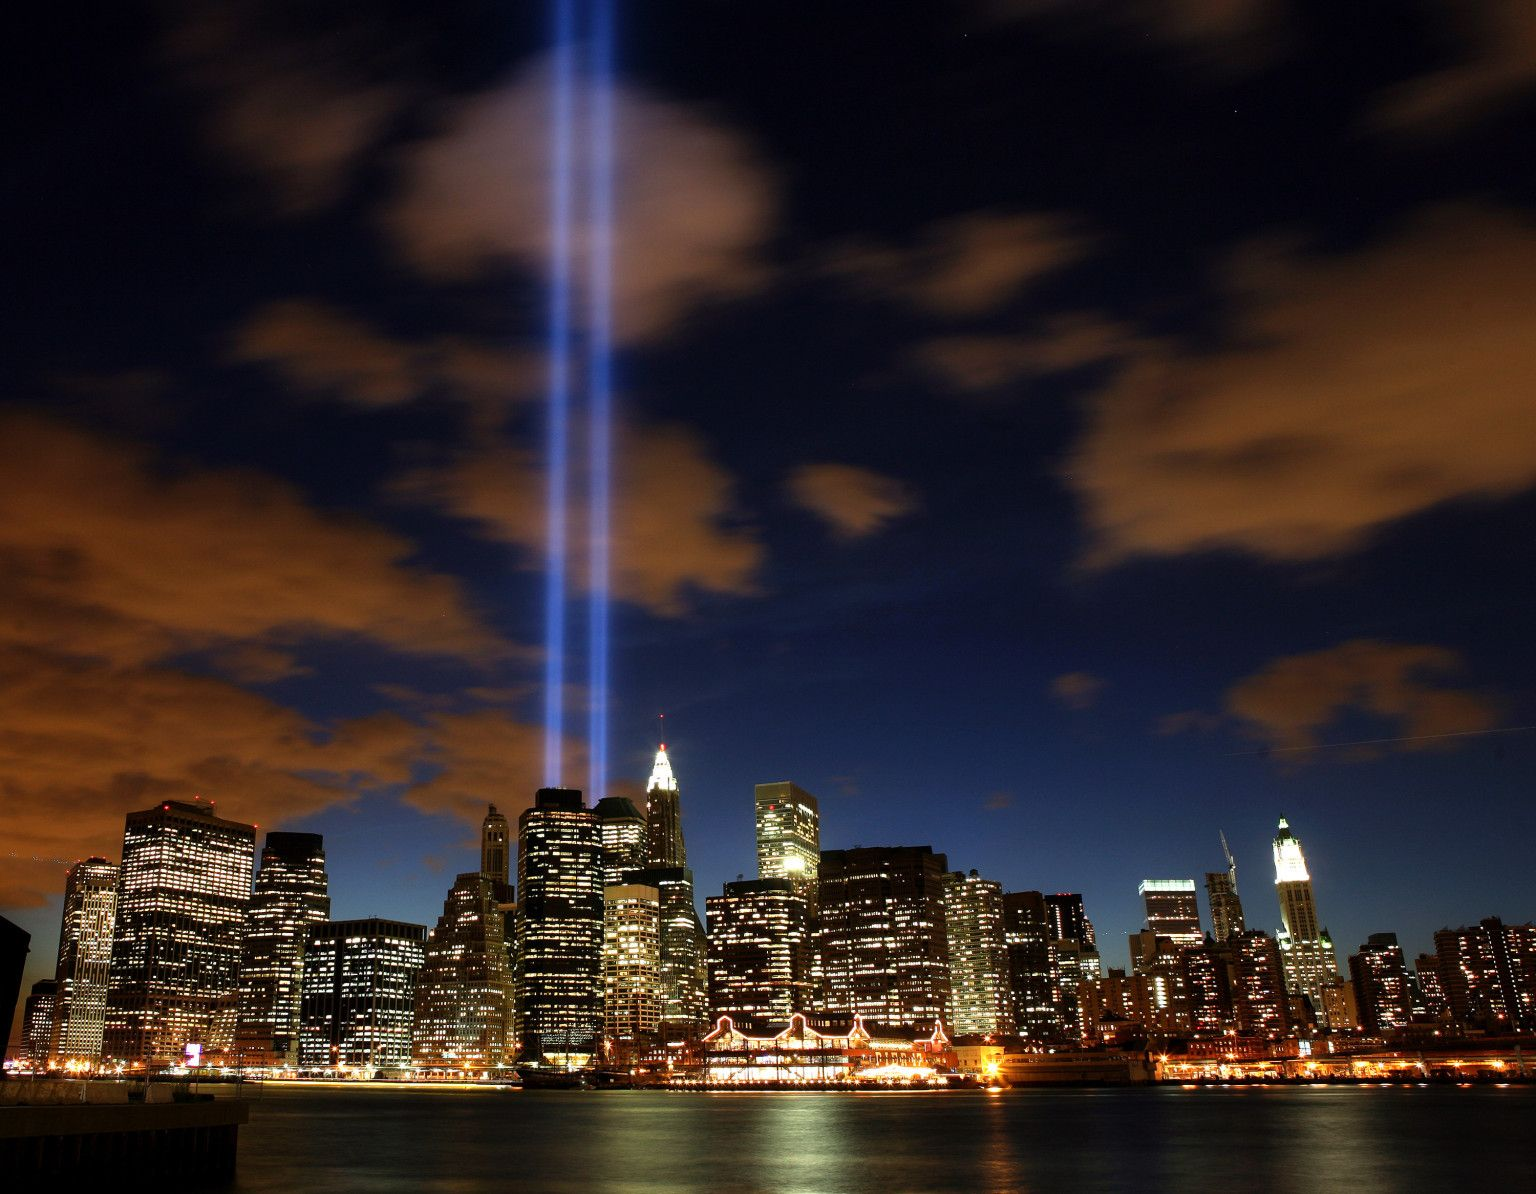 Every year on 911 two beams of